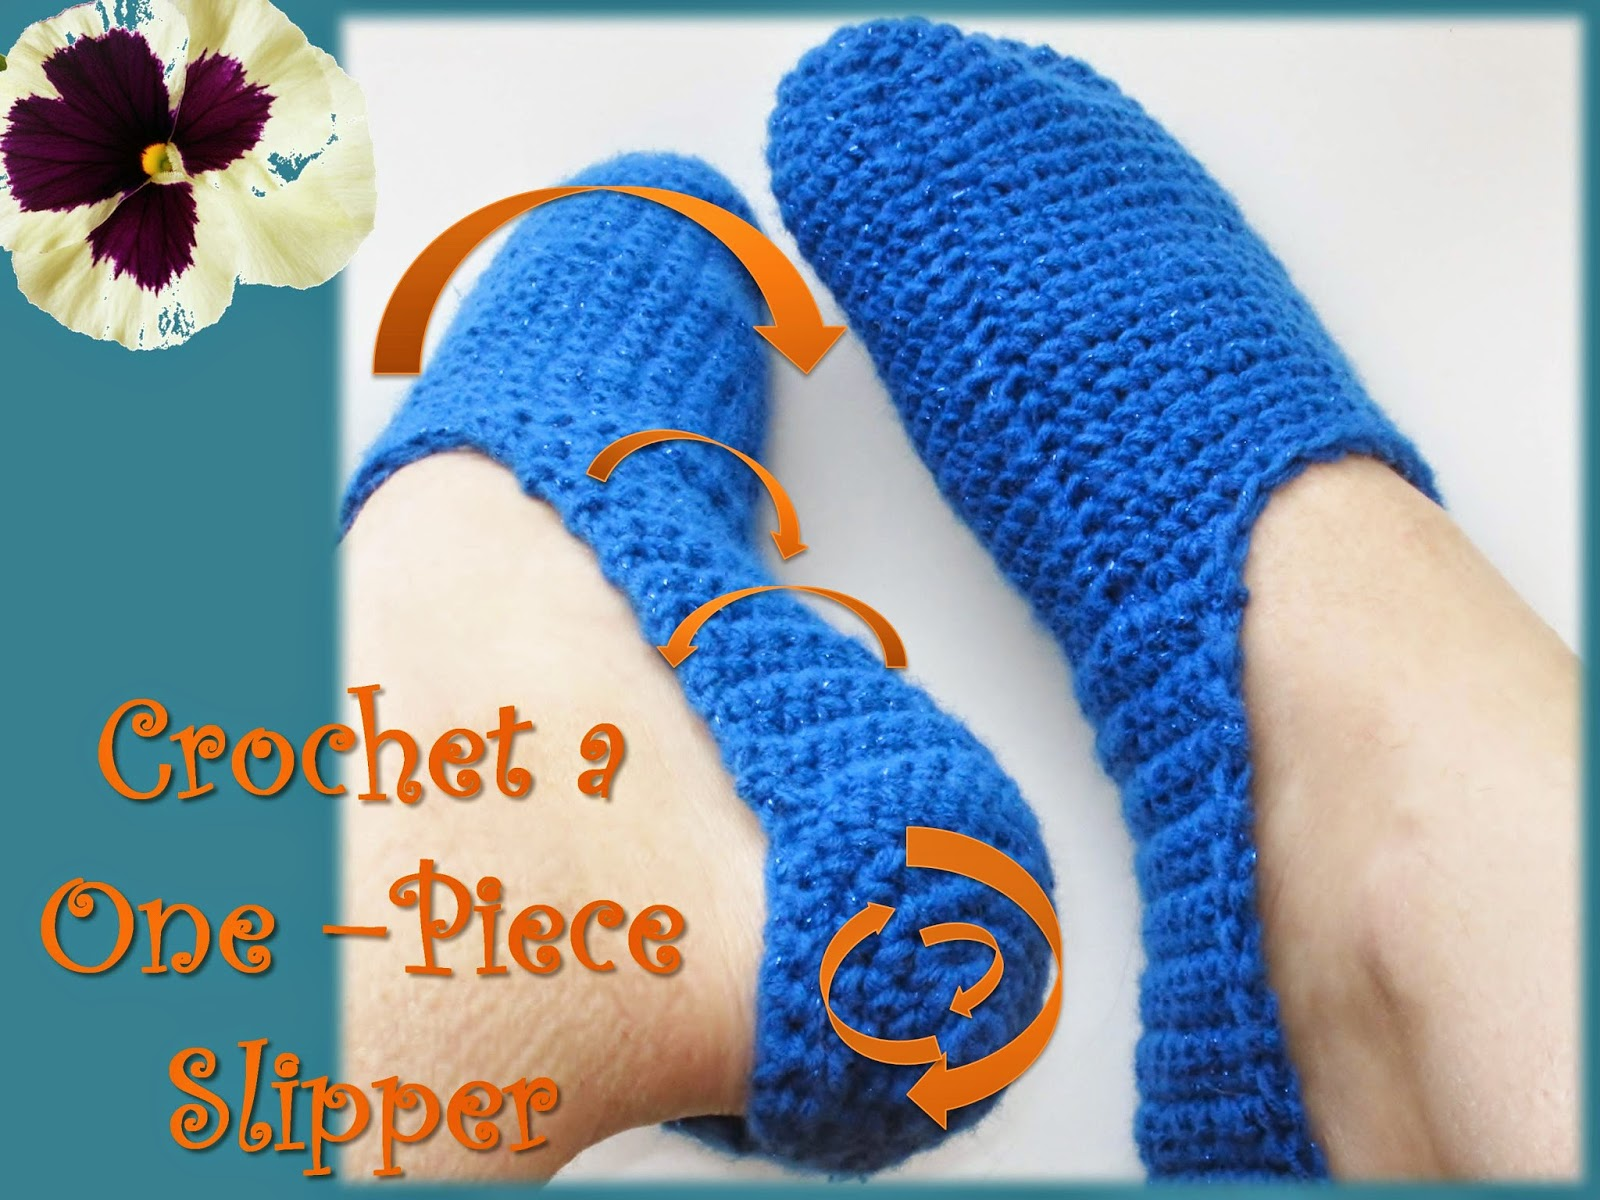 A bright blue crochet slipper with stitch direction arrows.